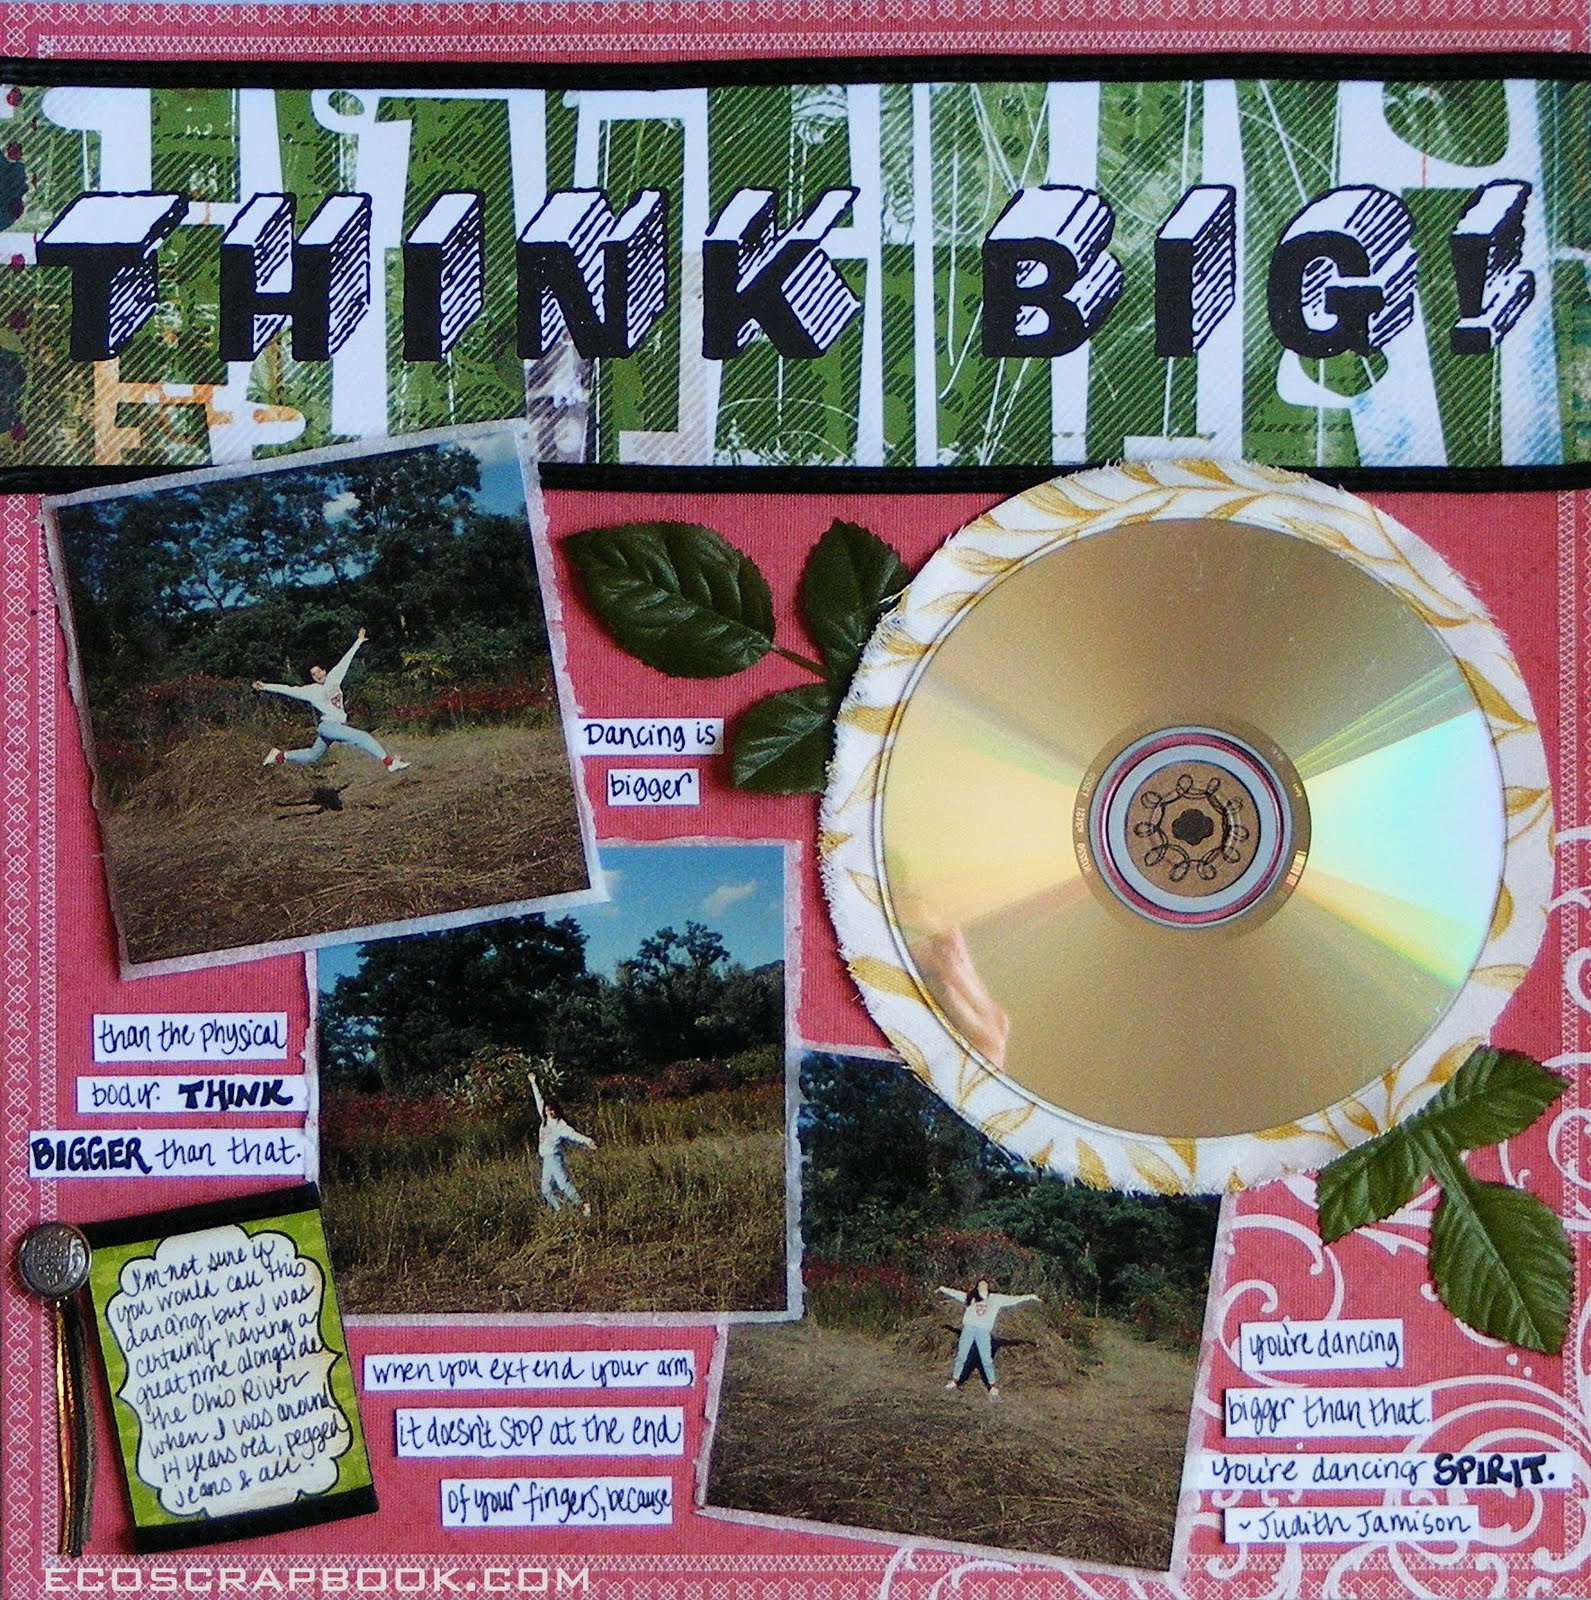 Scrapbook ideas recycled that s the title of my recycled scrapbook layout my goal to